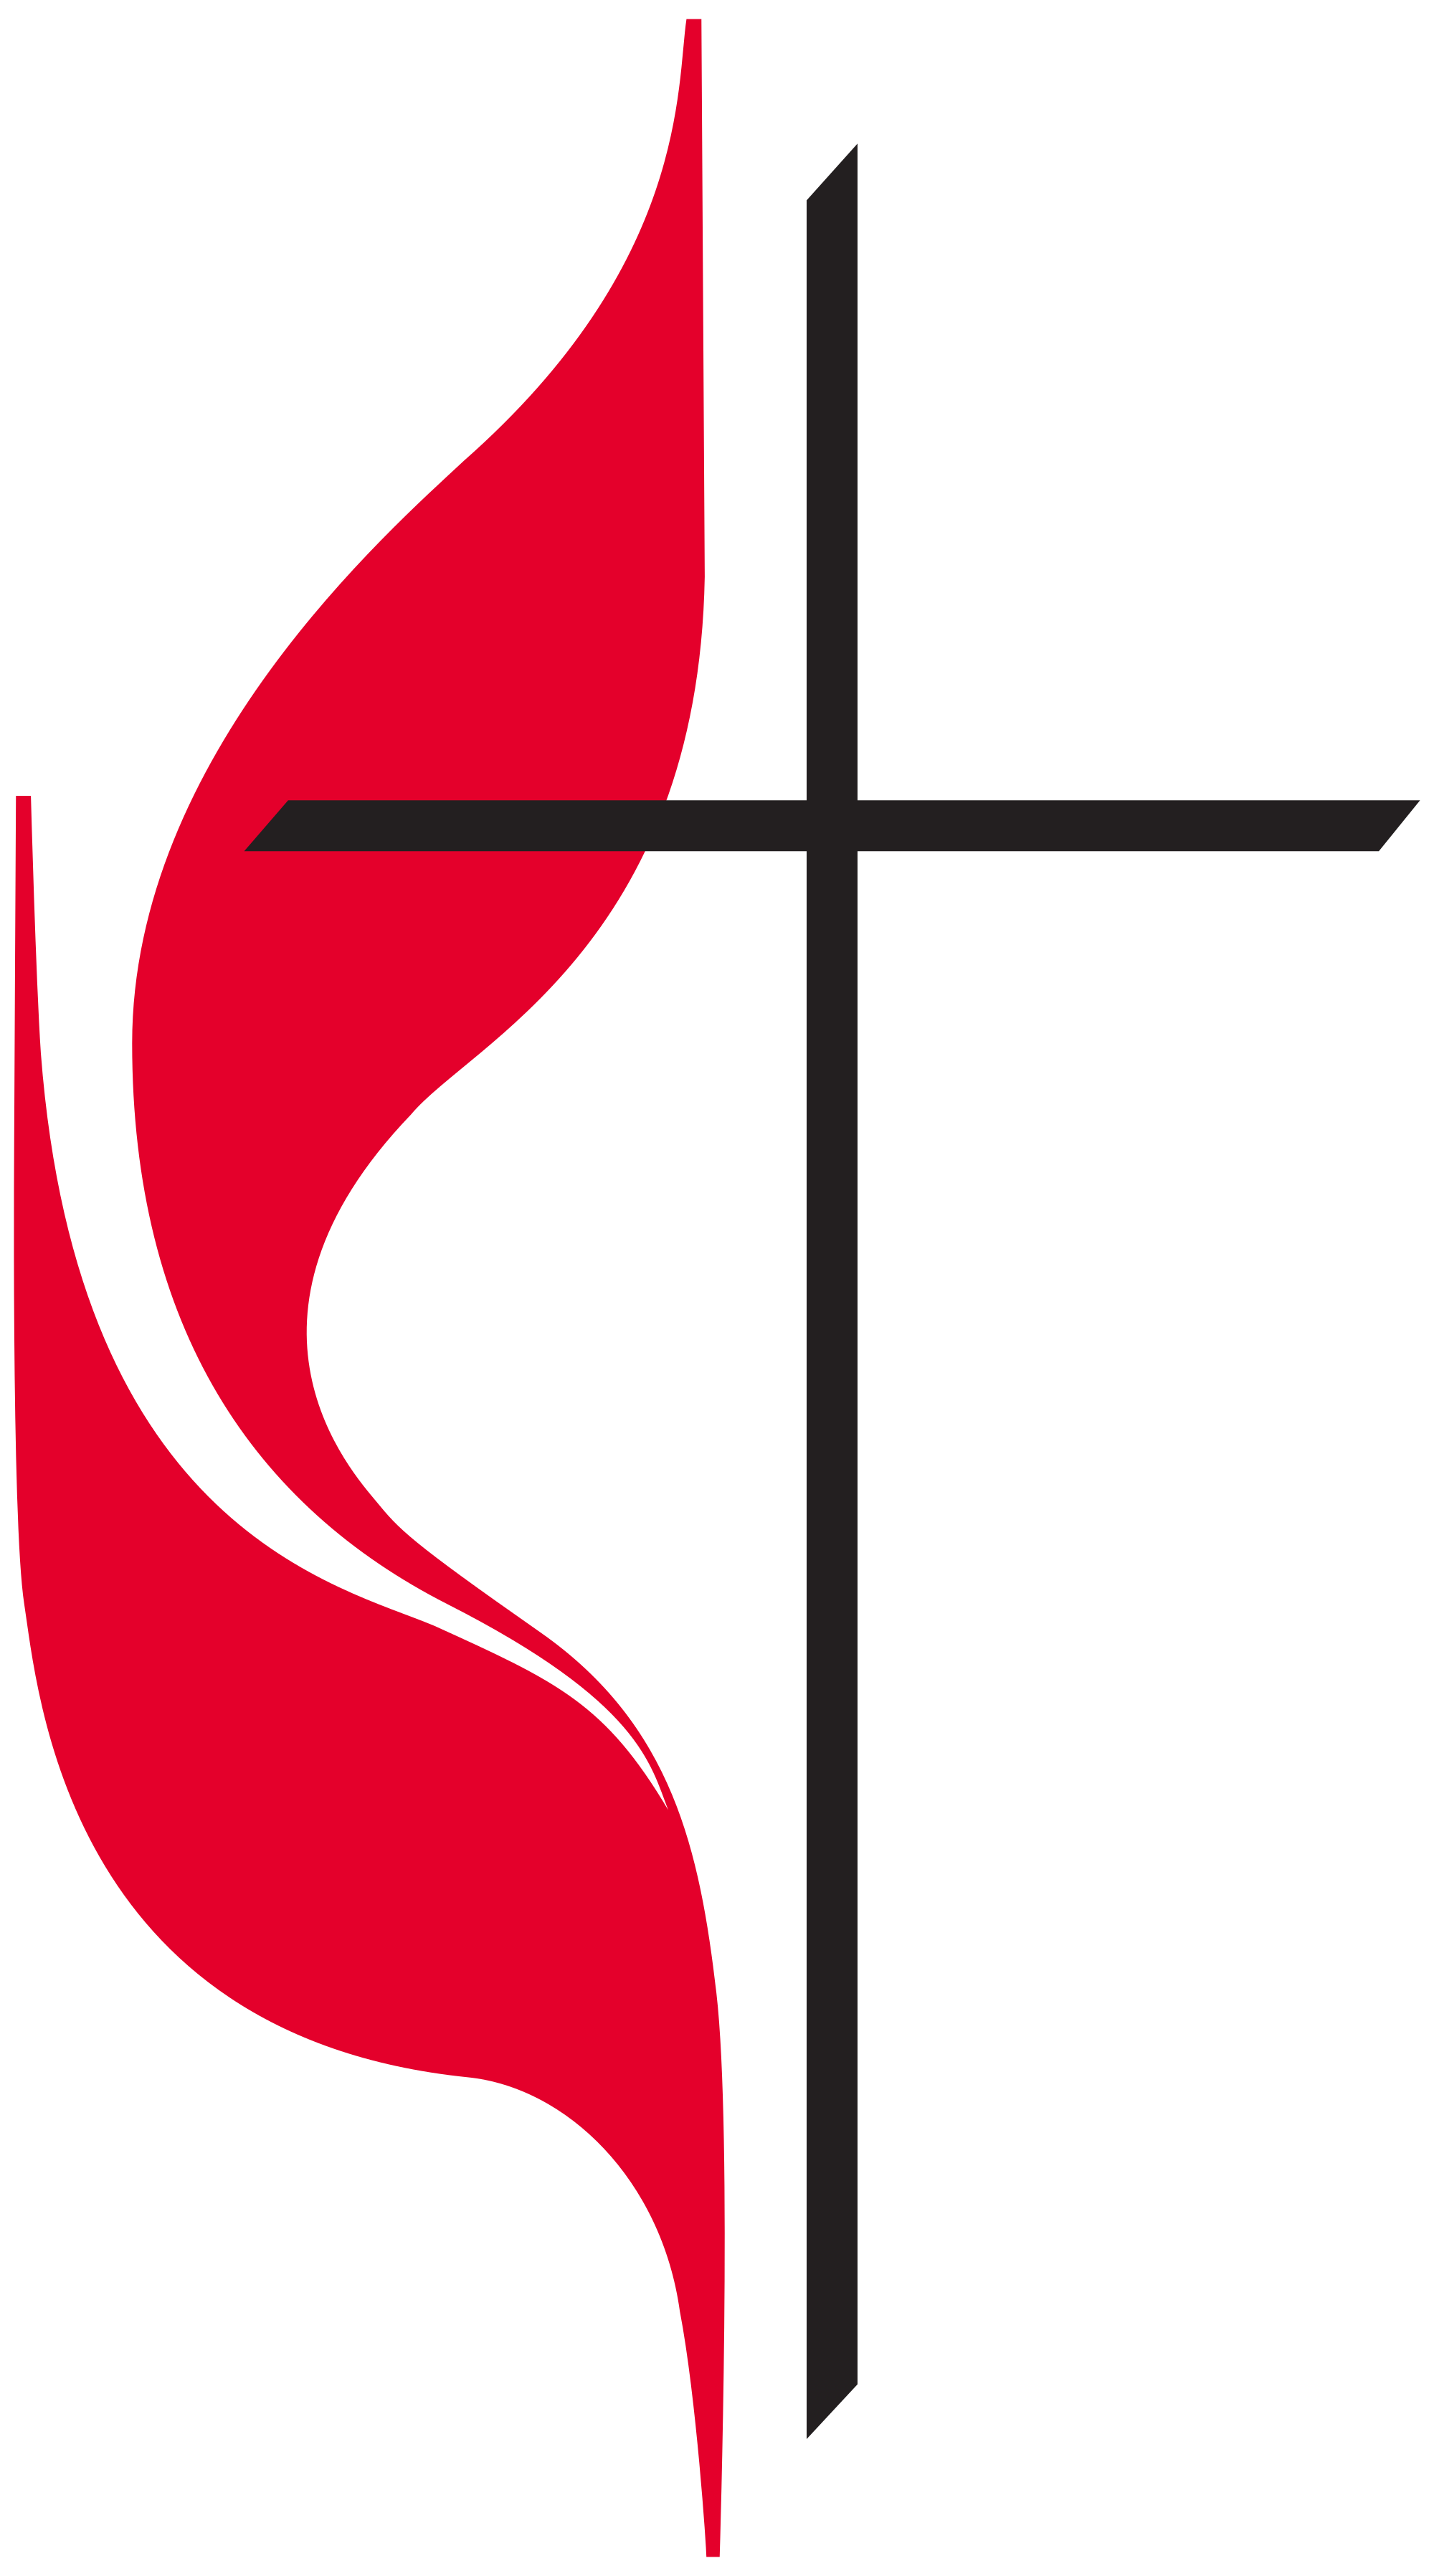 Kind clipart united. Cross and flame wikipedia